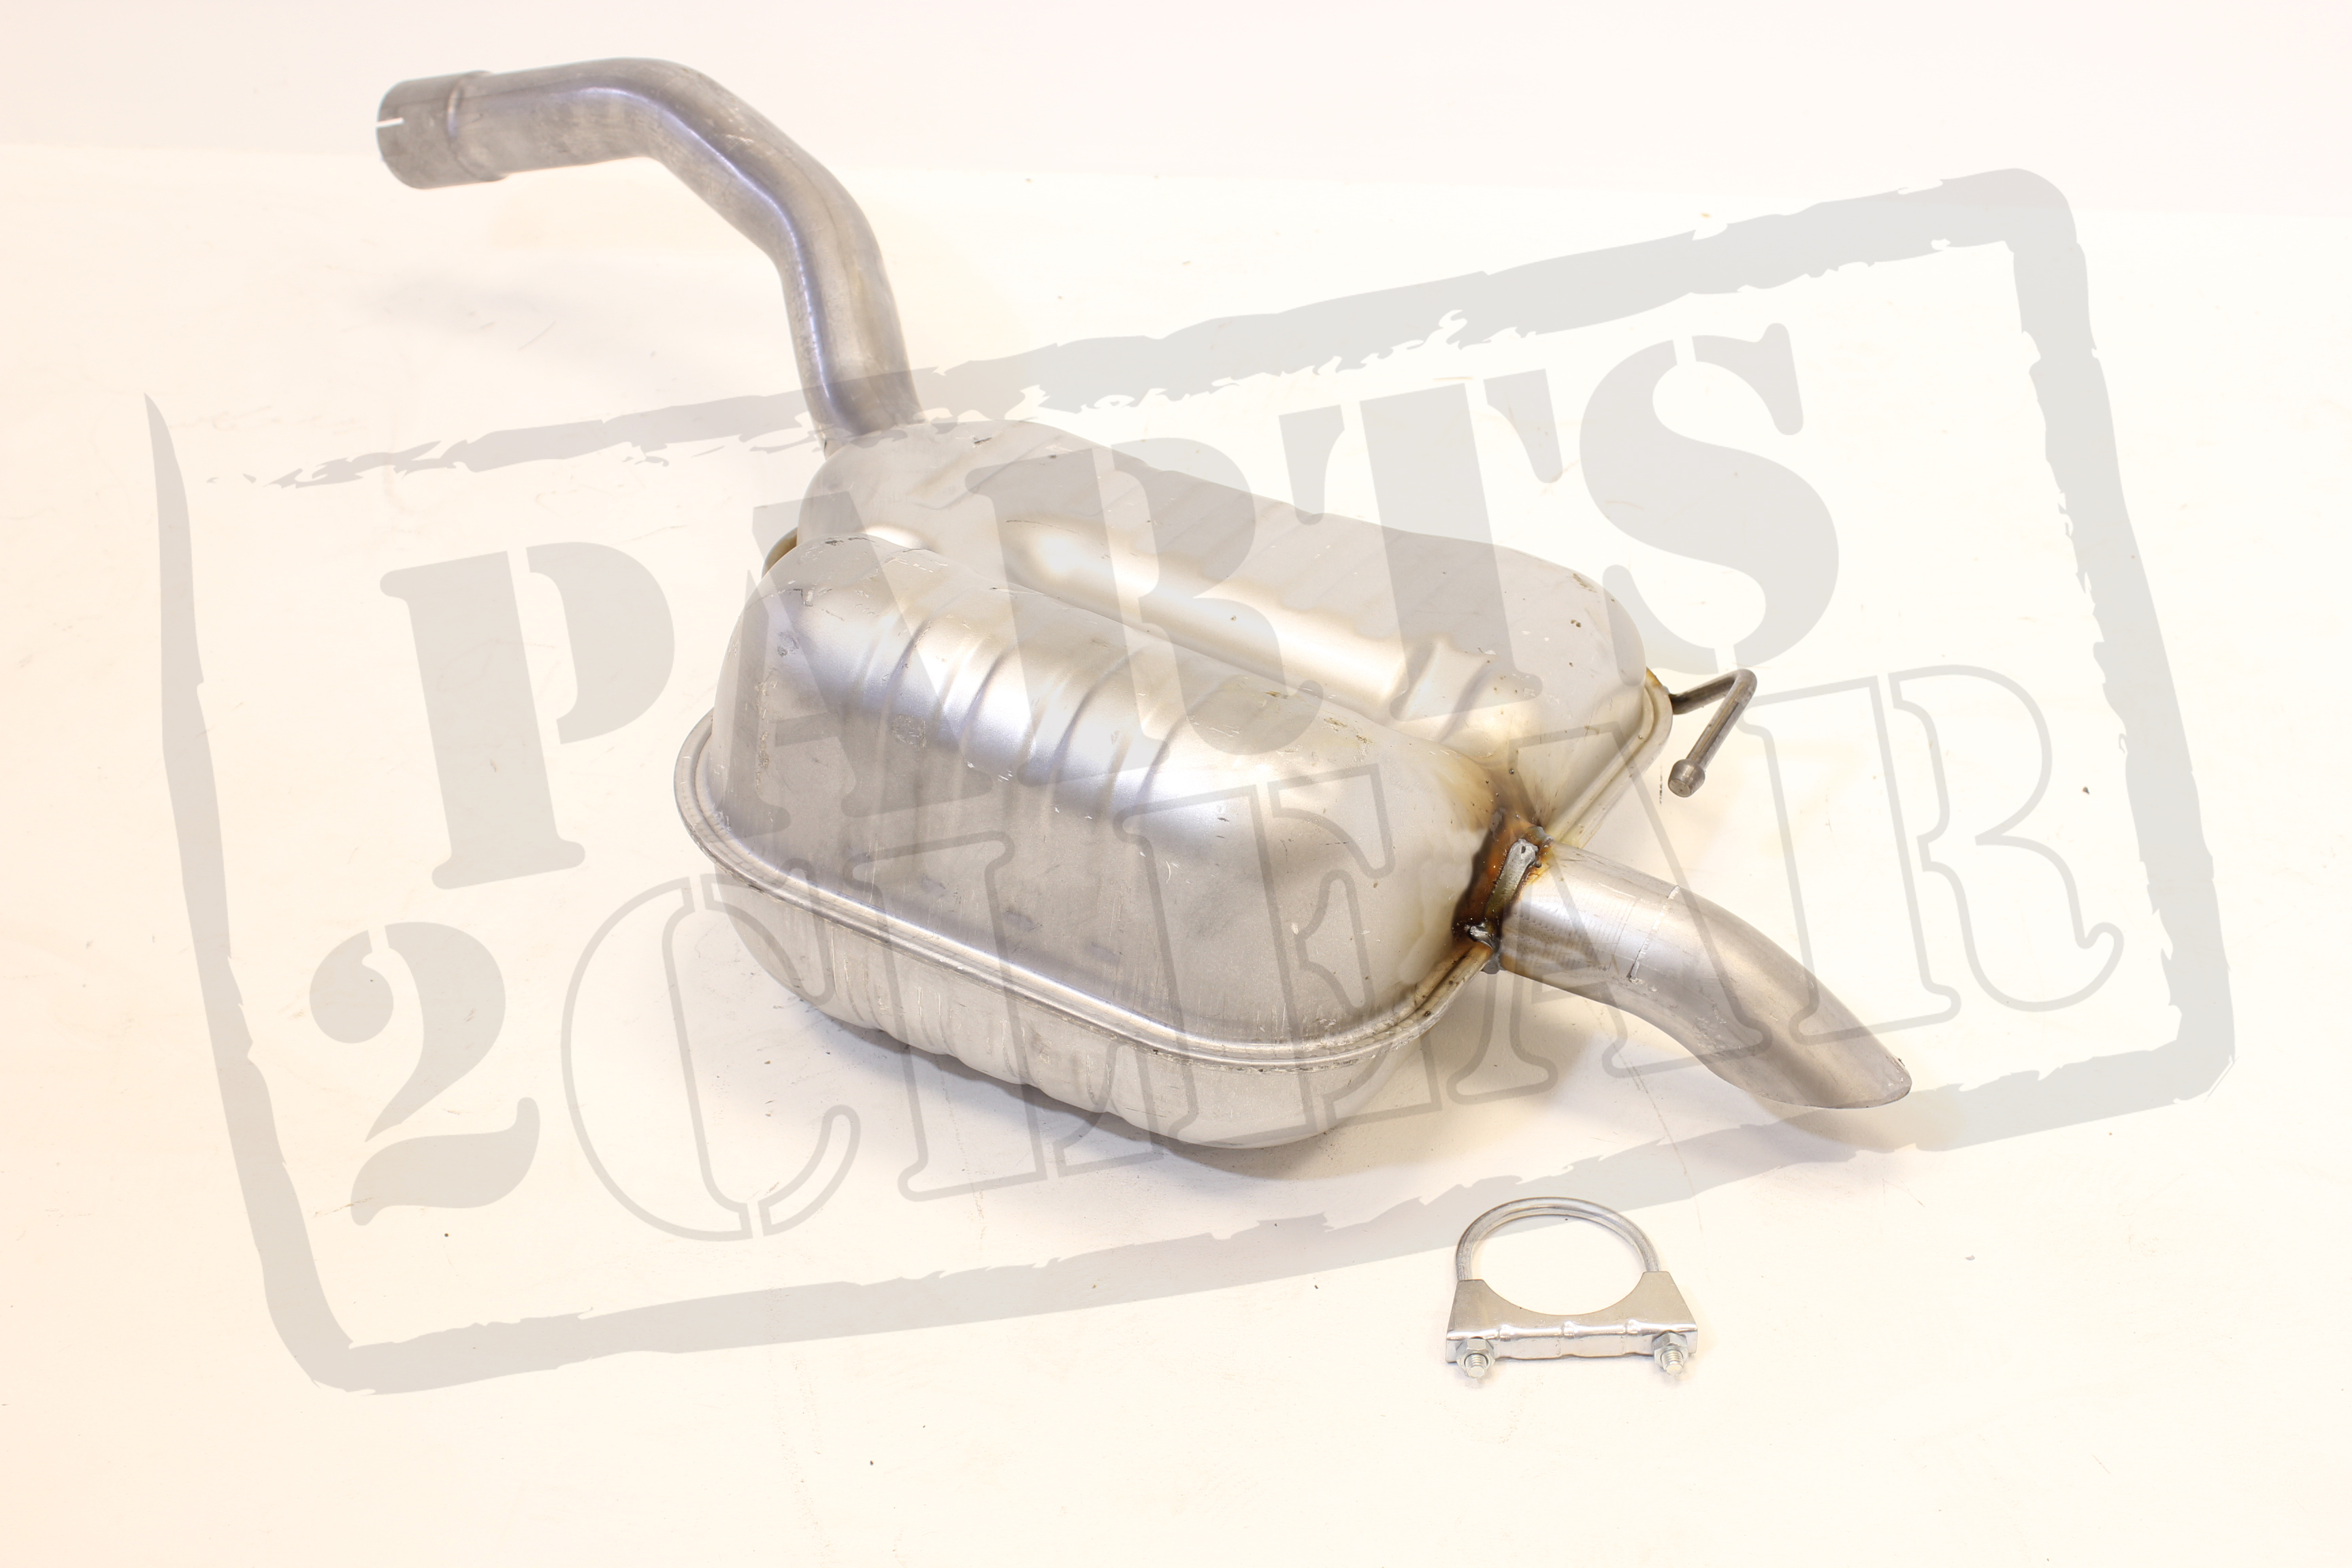 Ford S-max Smax 2.0 Tdci 140 Bhp Rear Exhaust Silencer /& Free Clamp 06-09